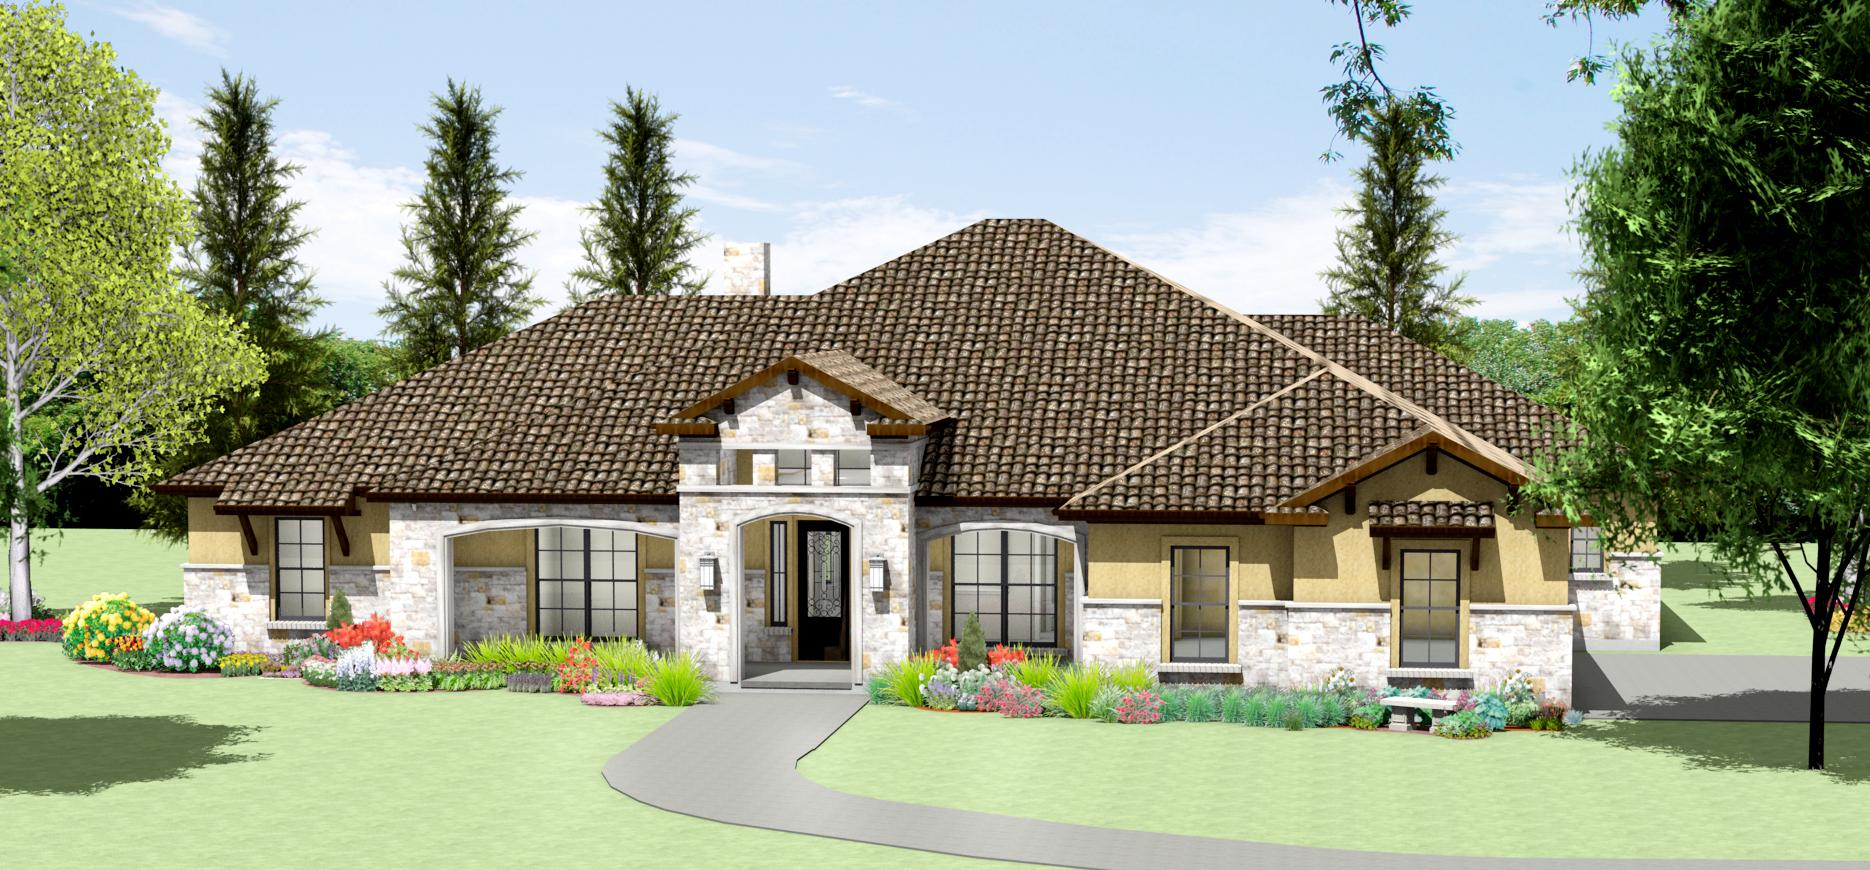 S3450r texas tuscan design texas house plans over 700 for Texas farm houses